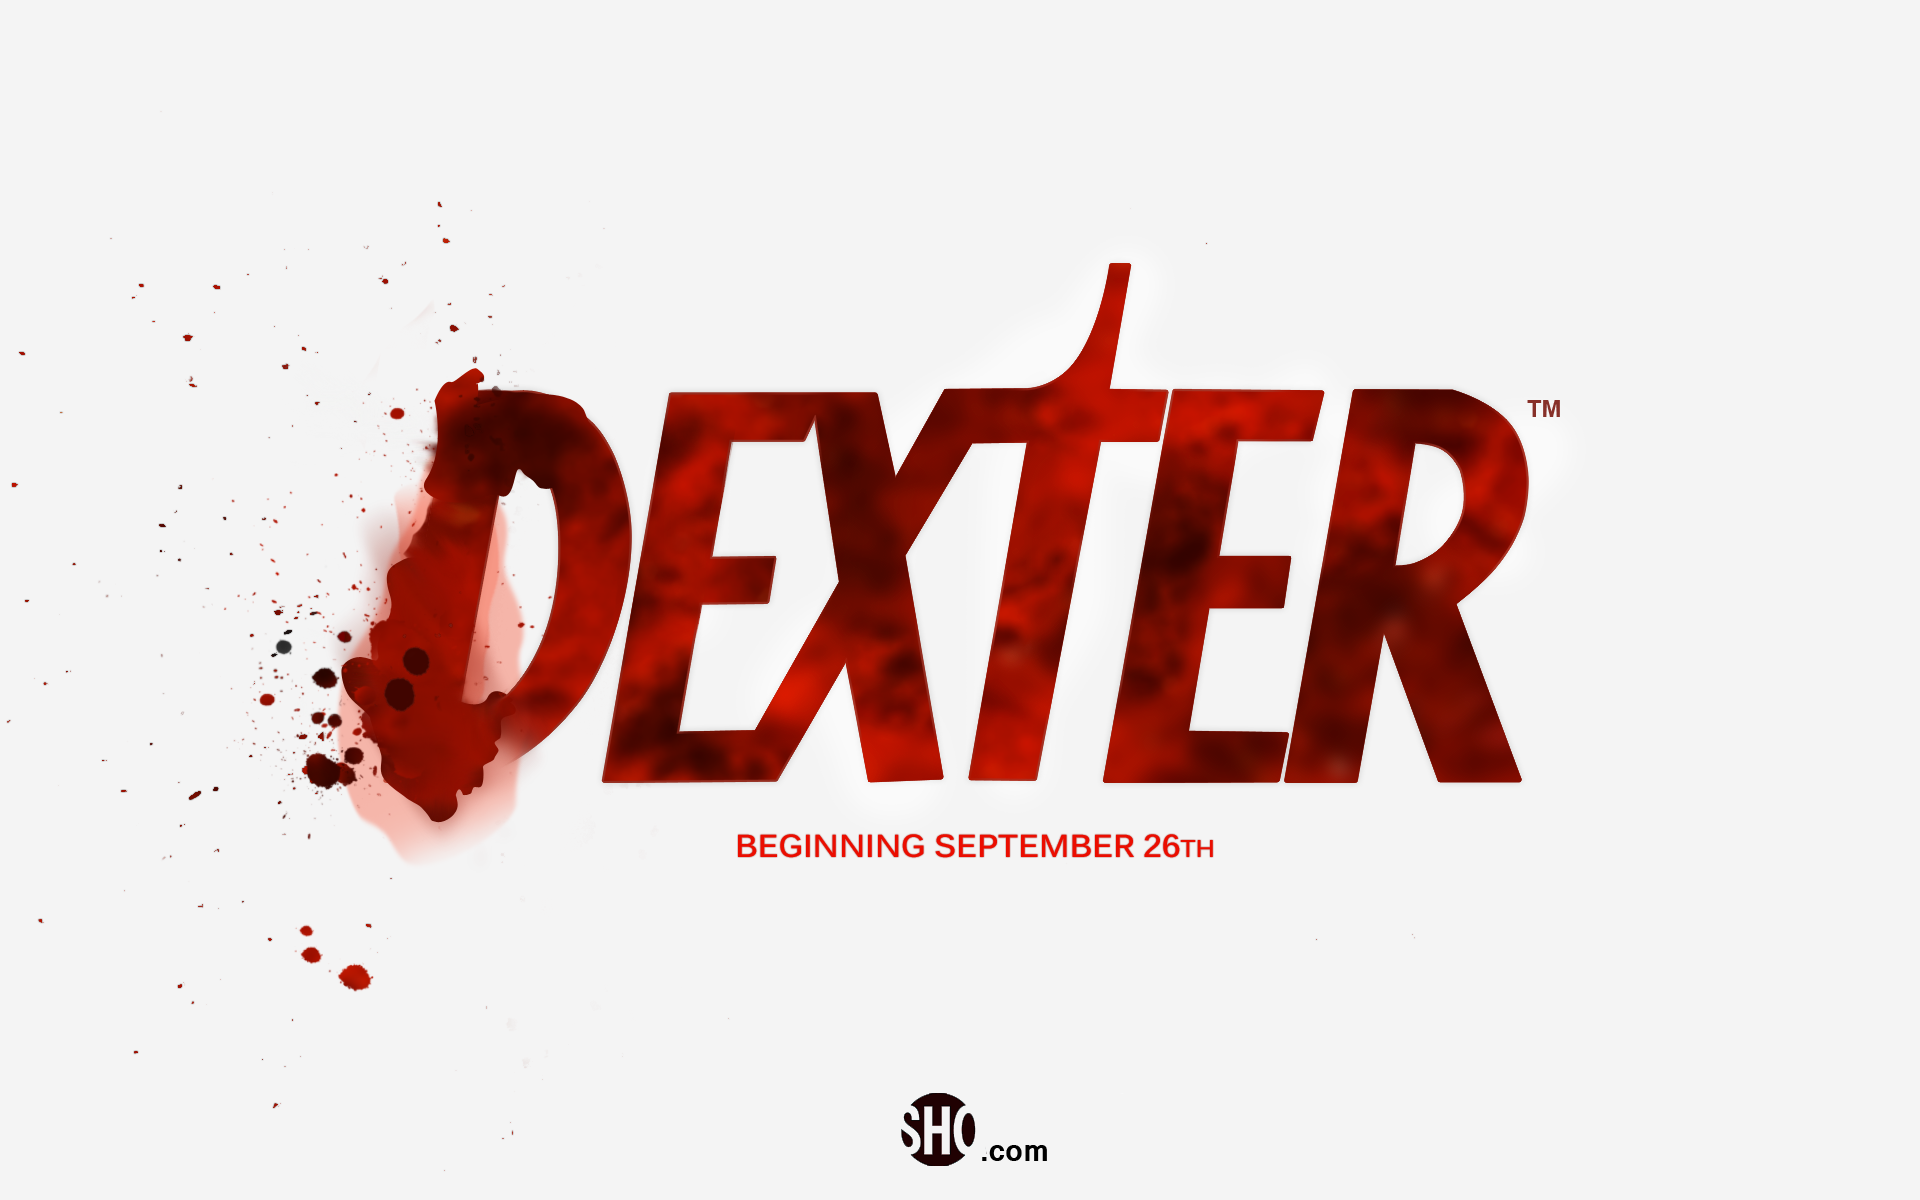 Dexter Logo And Titles Fonts In Use Title Font Dexter Tv Show Logos